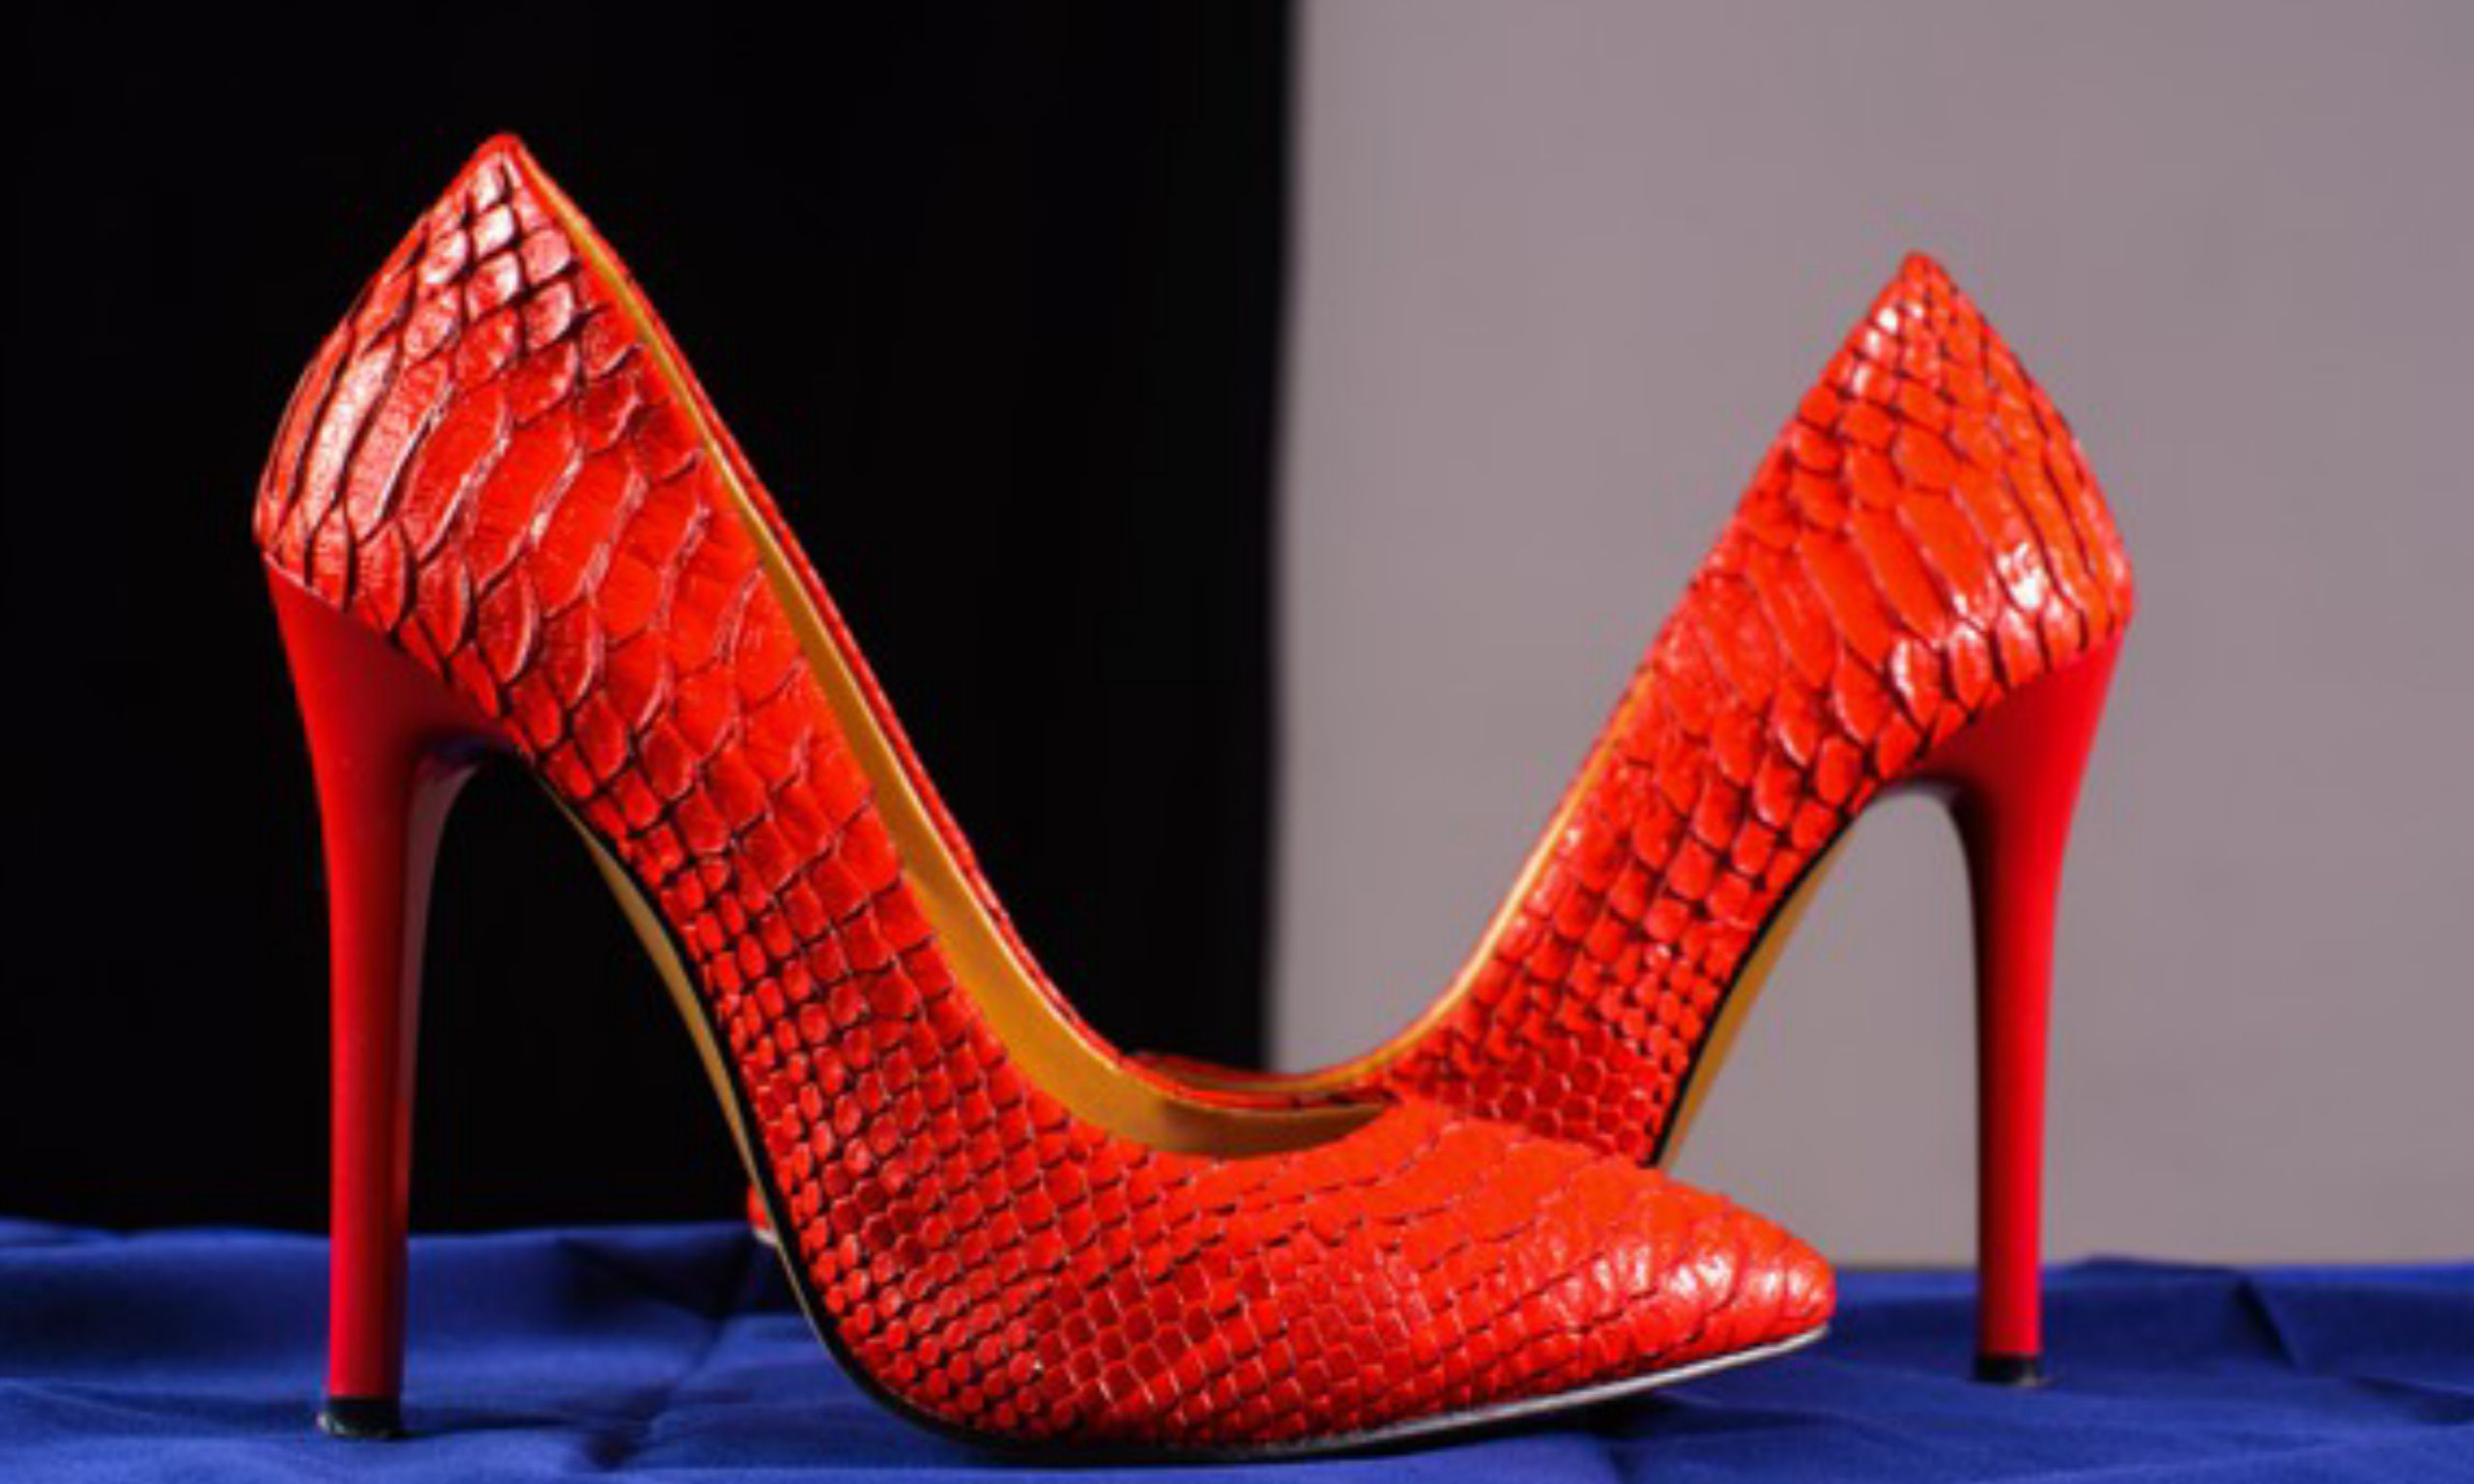 Wedge and High Heels: which is more comfortable?